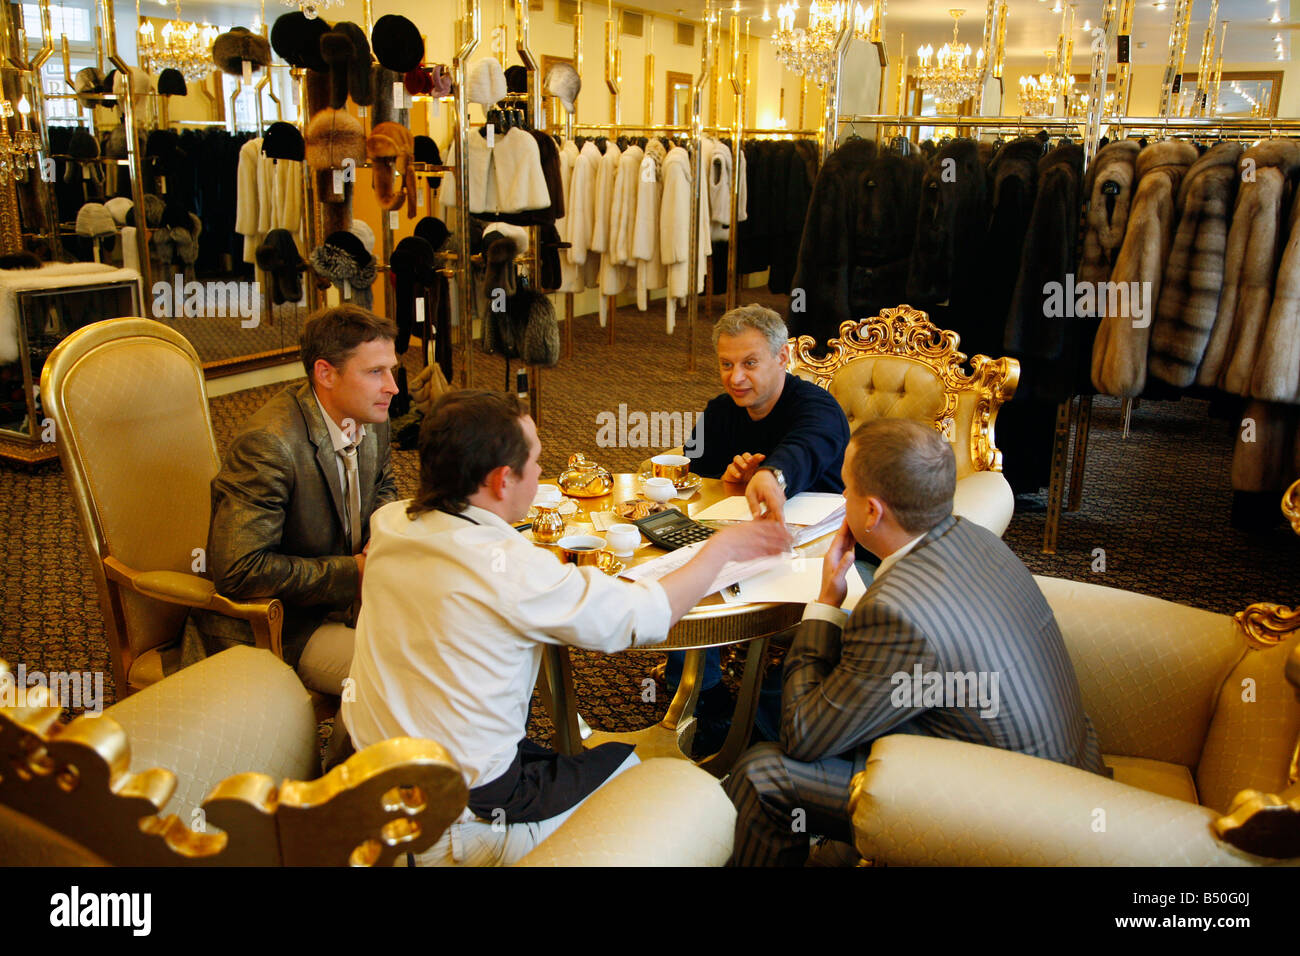 Aug 2008 - Business meeting at the exclusive Lena boutique which sells sable fur coat St Petersburg Russia - Stock Image